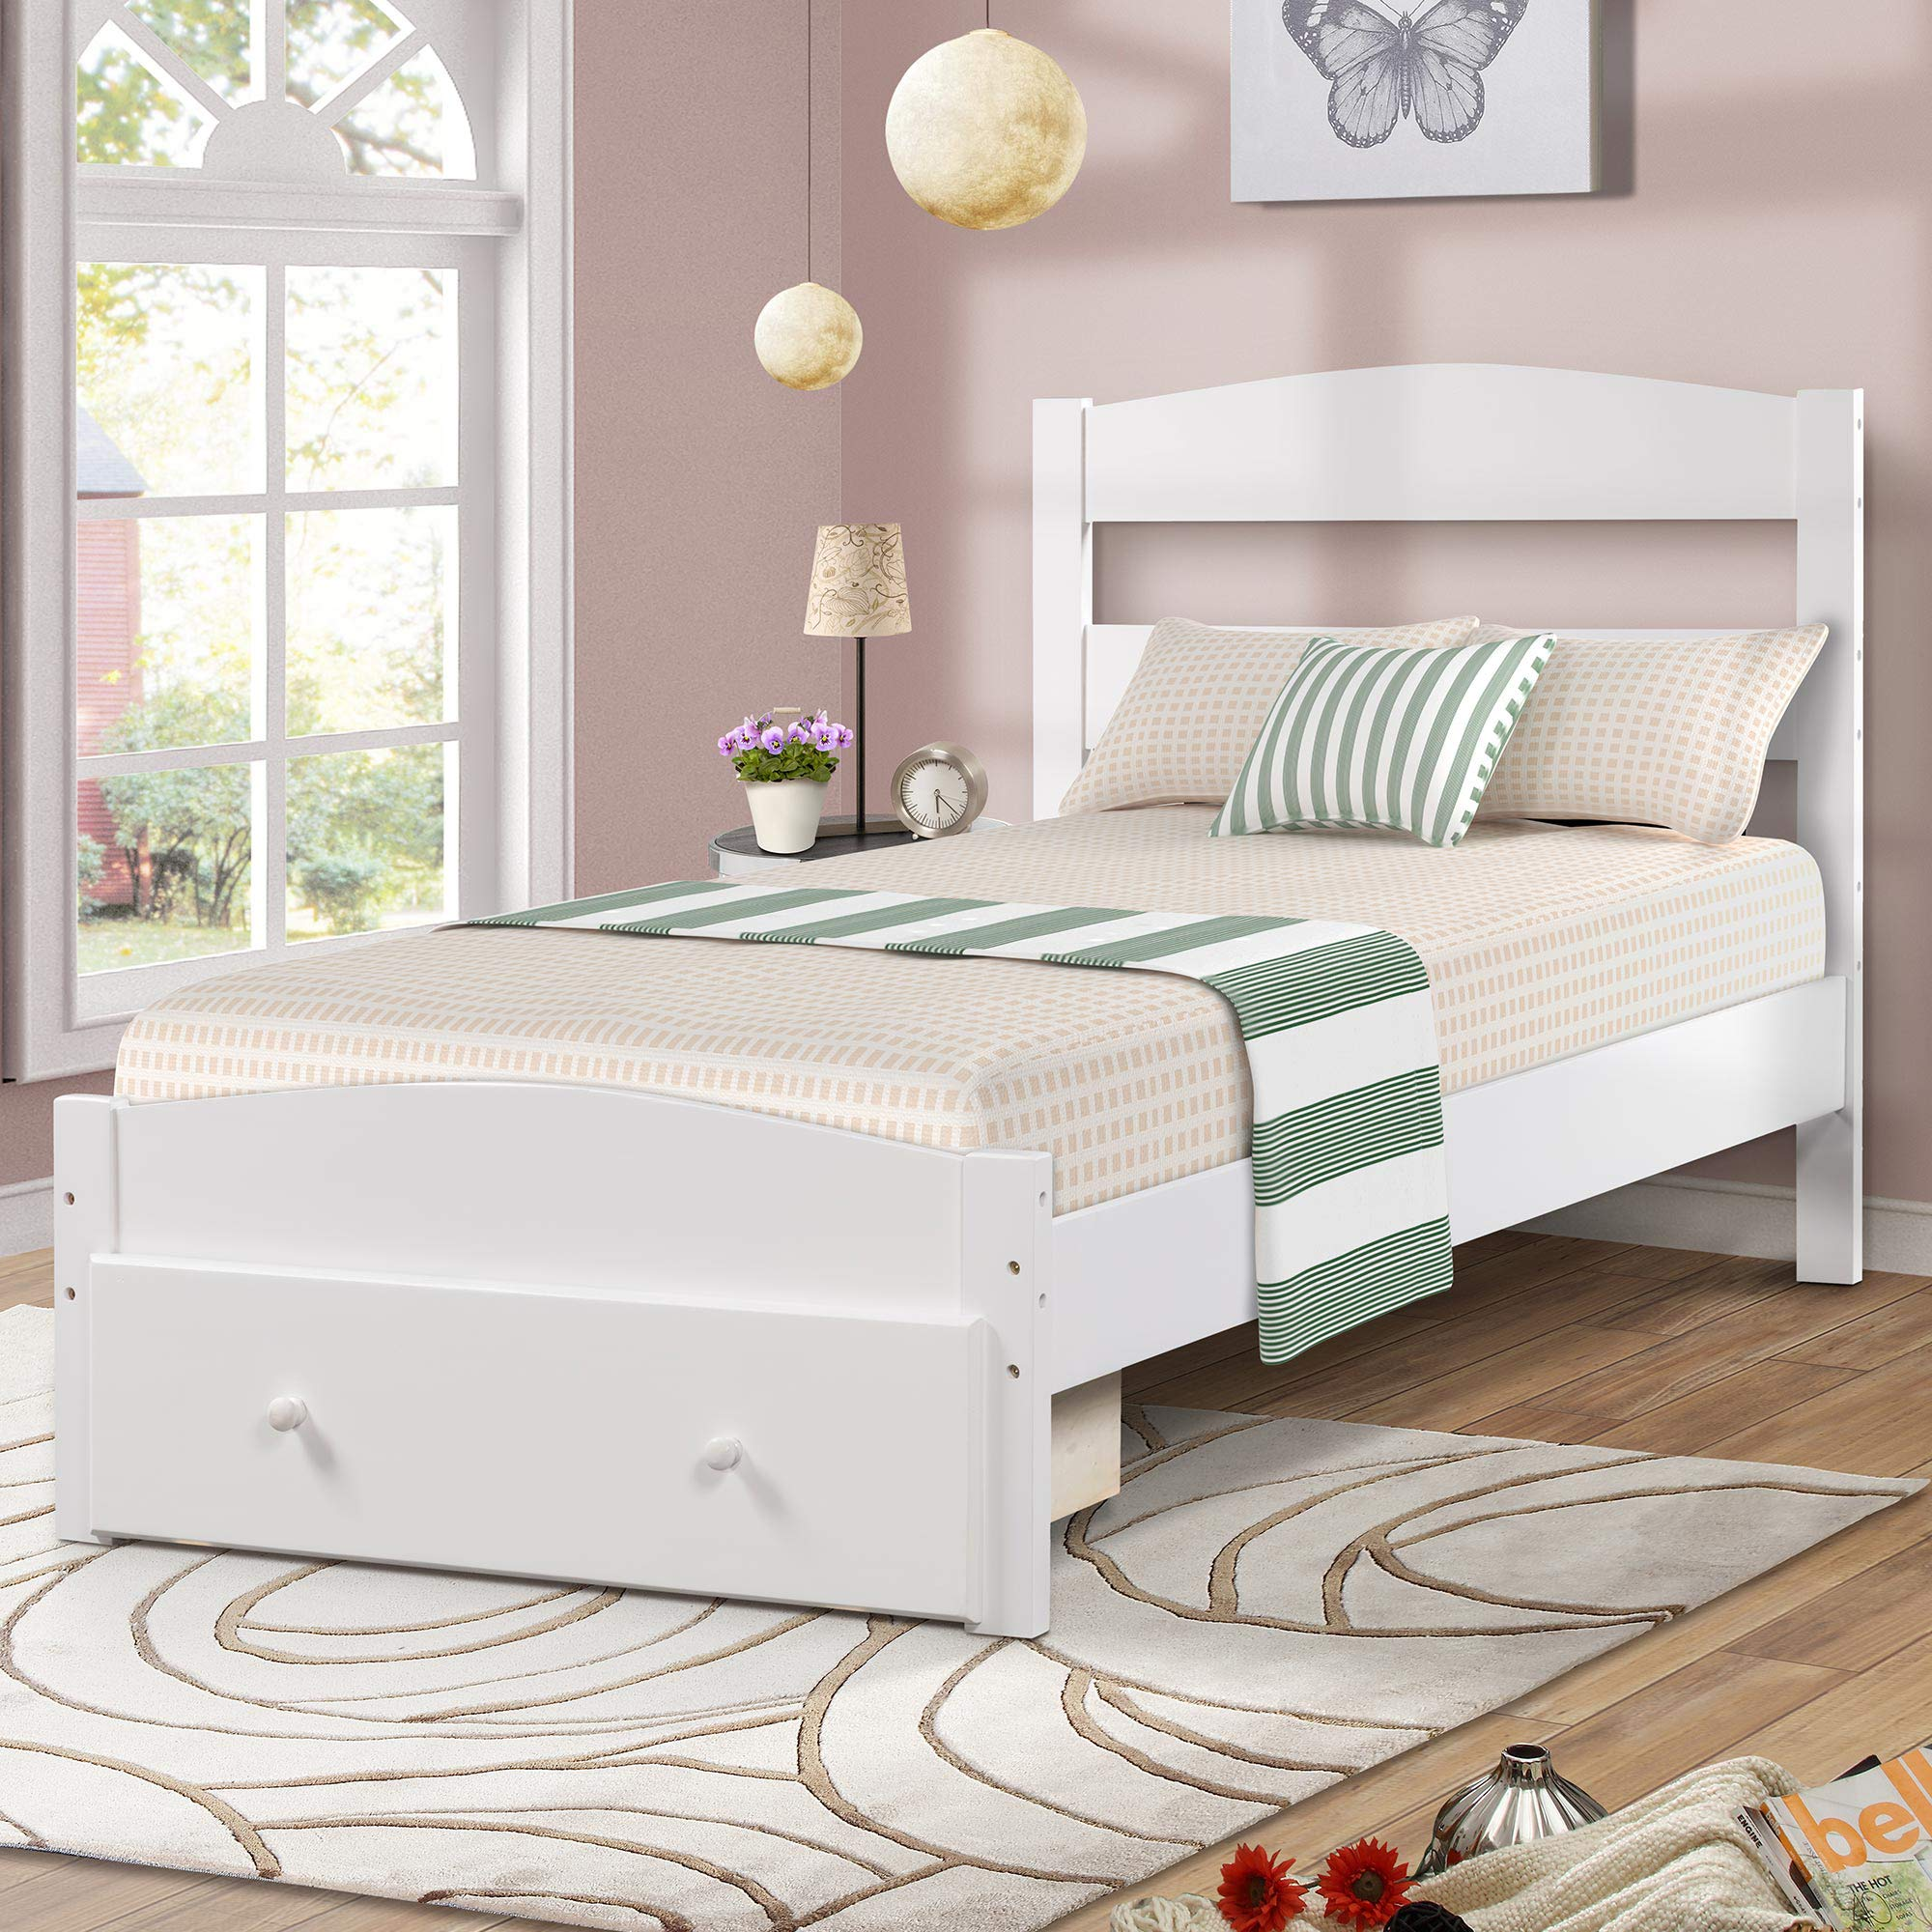 Wood Platform Bed Frame with Headboard and Storage , White Wooden Bed Frame, Twin, 78'' L x 41.7'' W X 35.5'' H, Model WF186776 by Merax